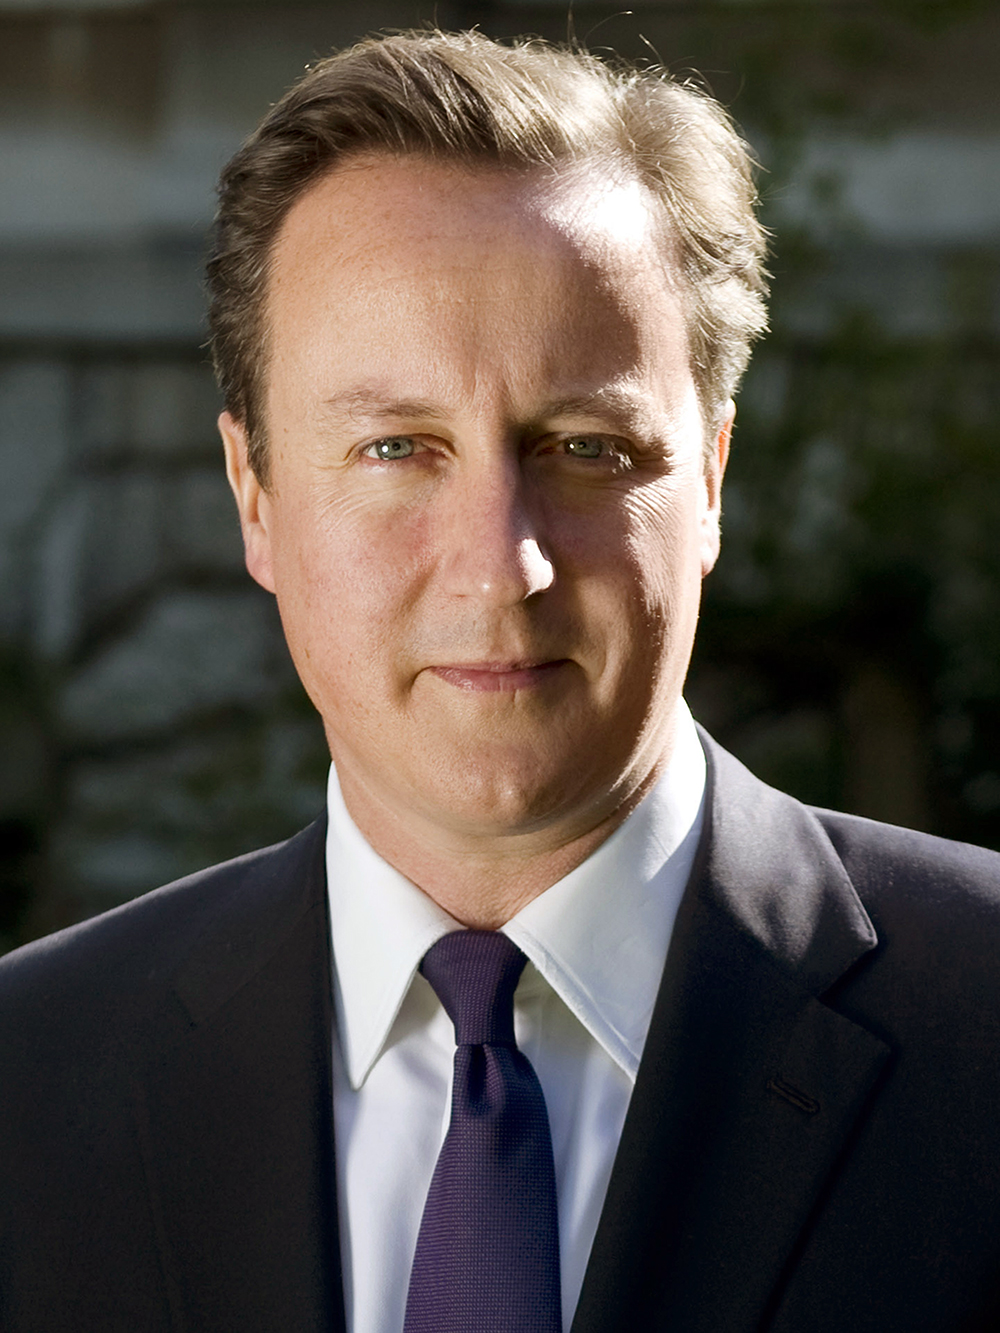 David_Cameron_official